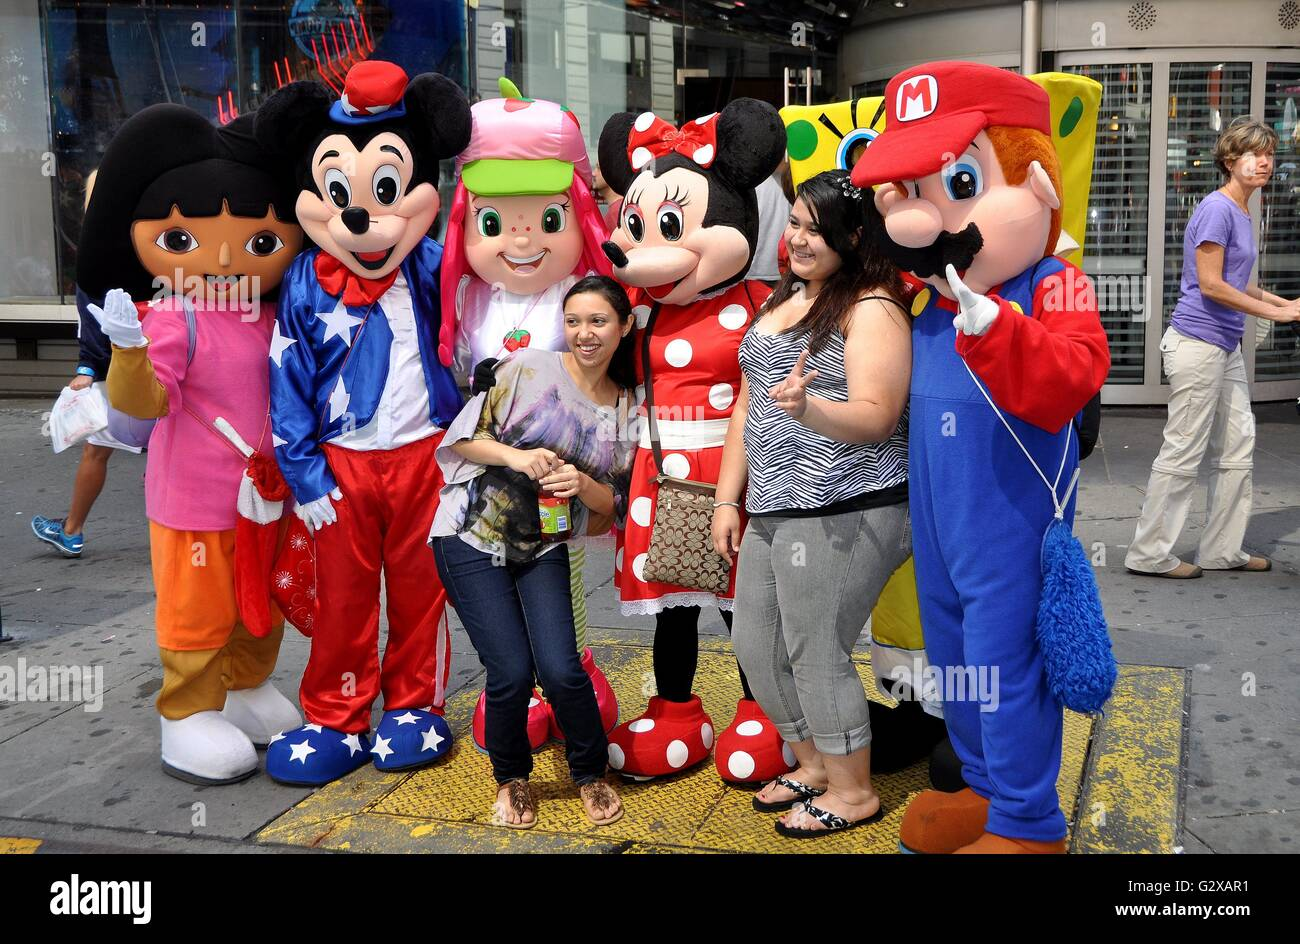 New York City Tourists With Disneys Mickey And Minnie Mouse Other Characters From Animated